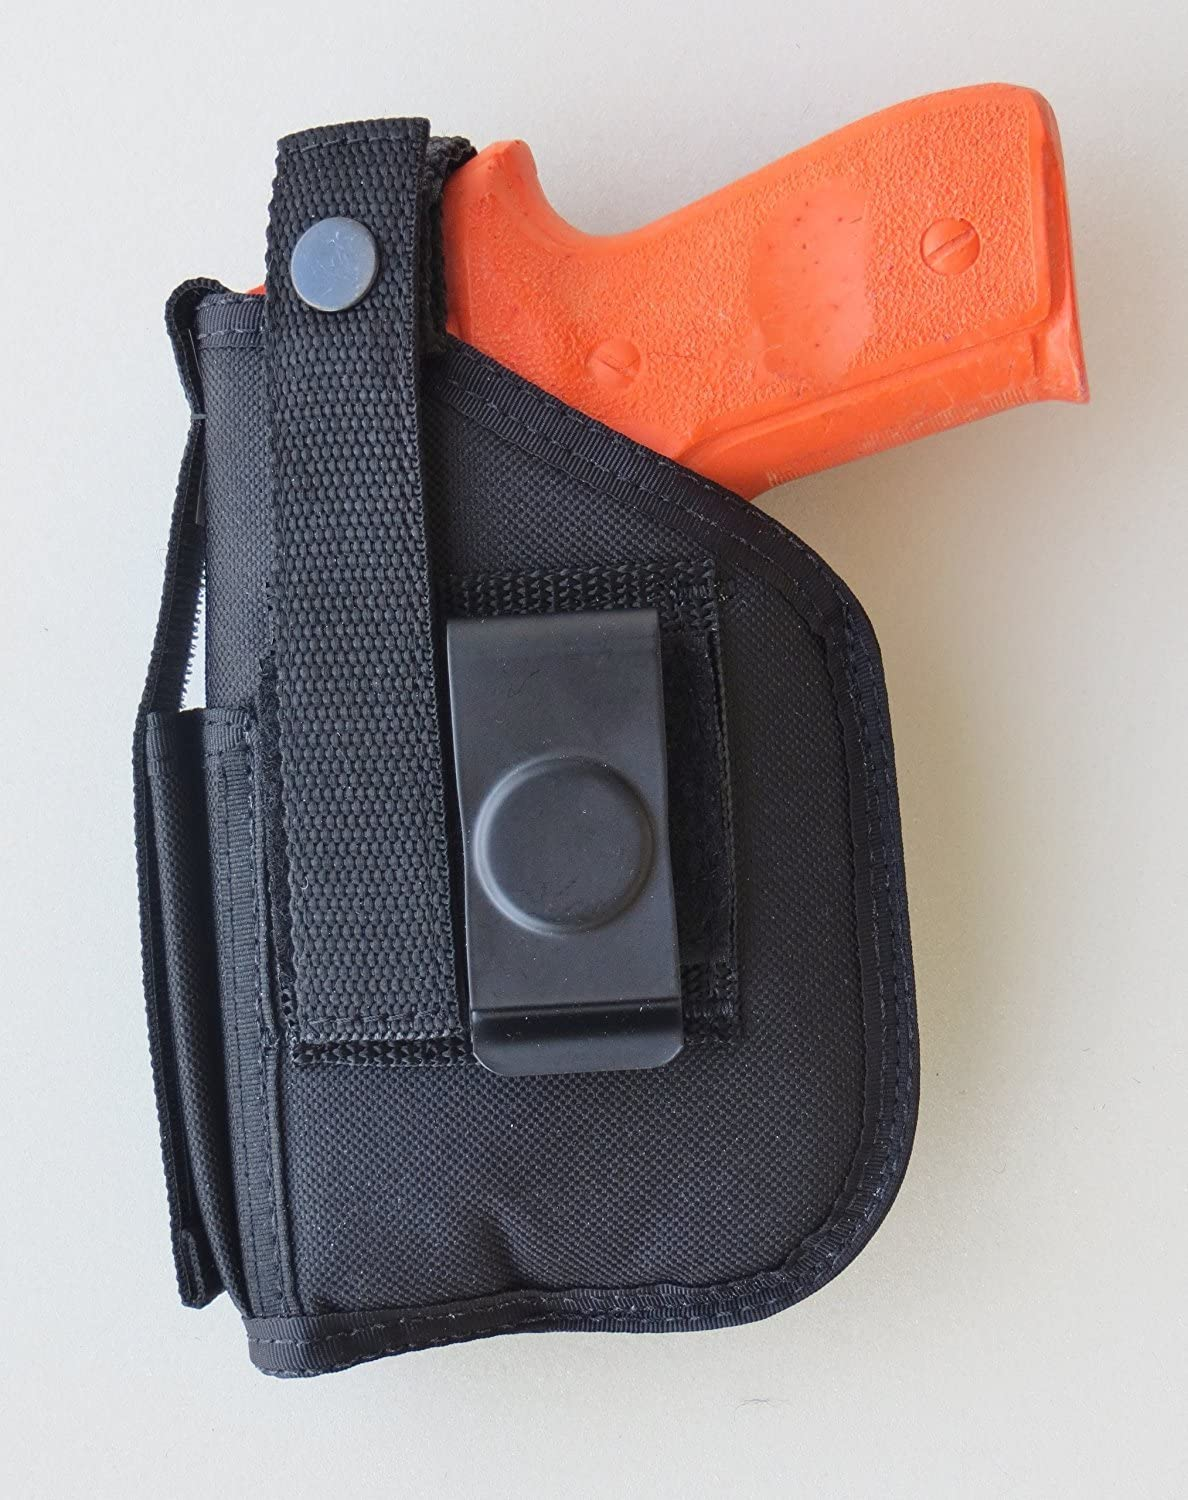 USA MADE S/&W SD40 VE CONCEAL CONCEAL CARRY COMFORT HOLSTER BY ACE CASE